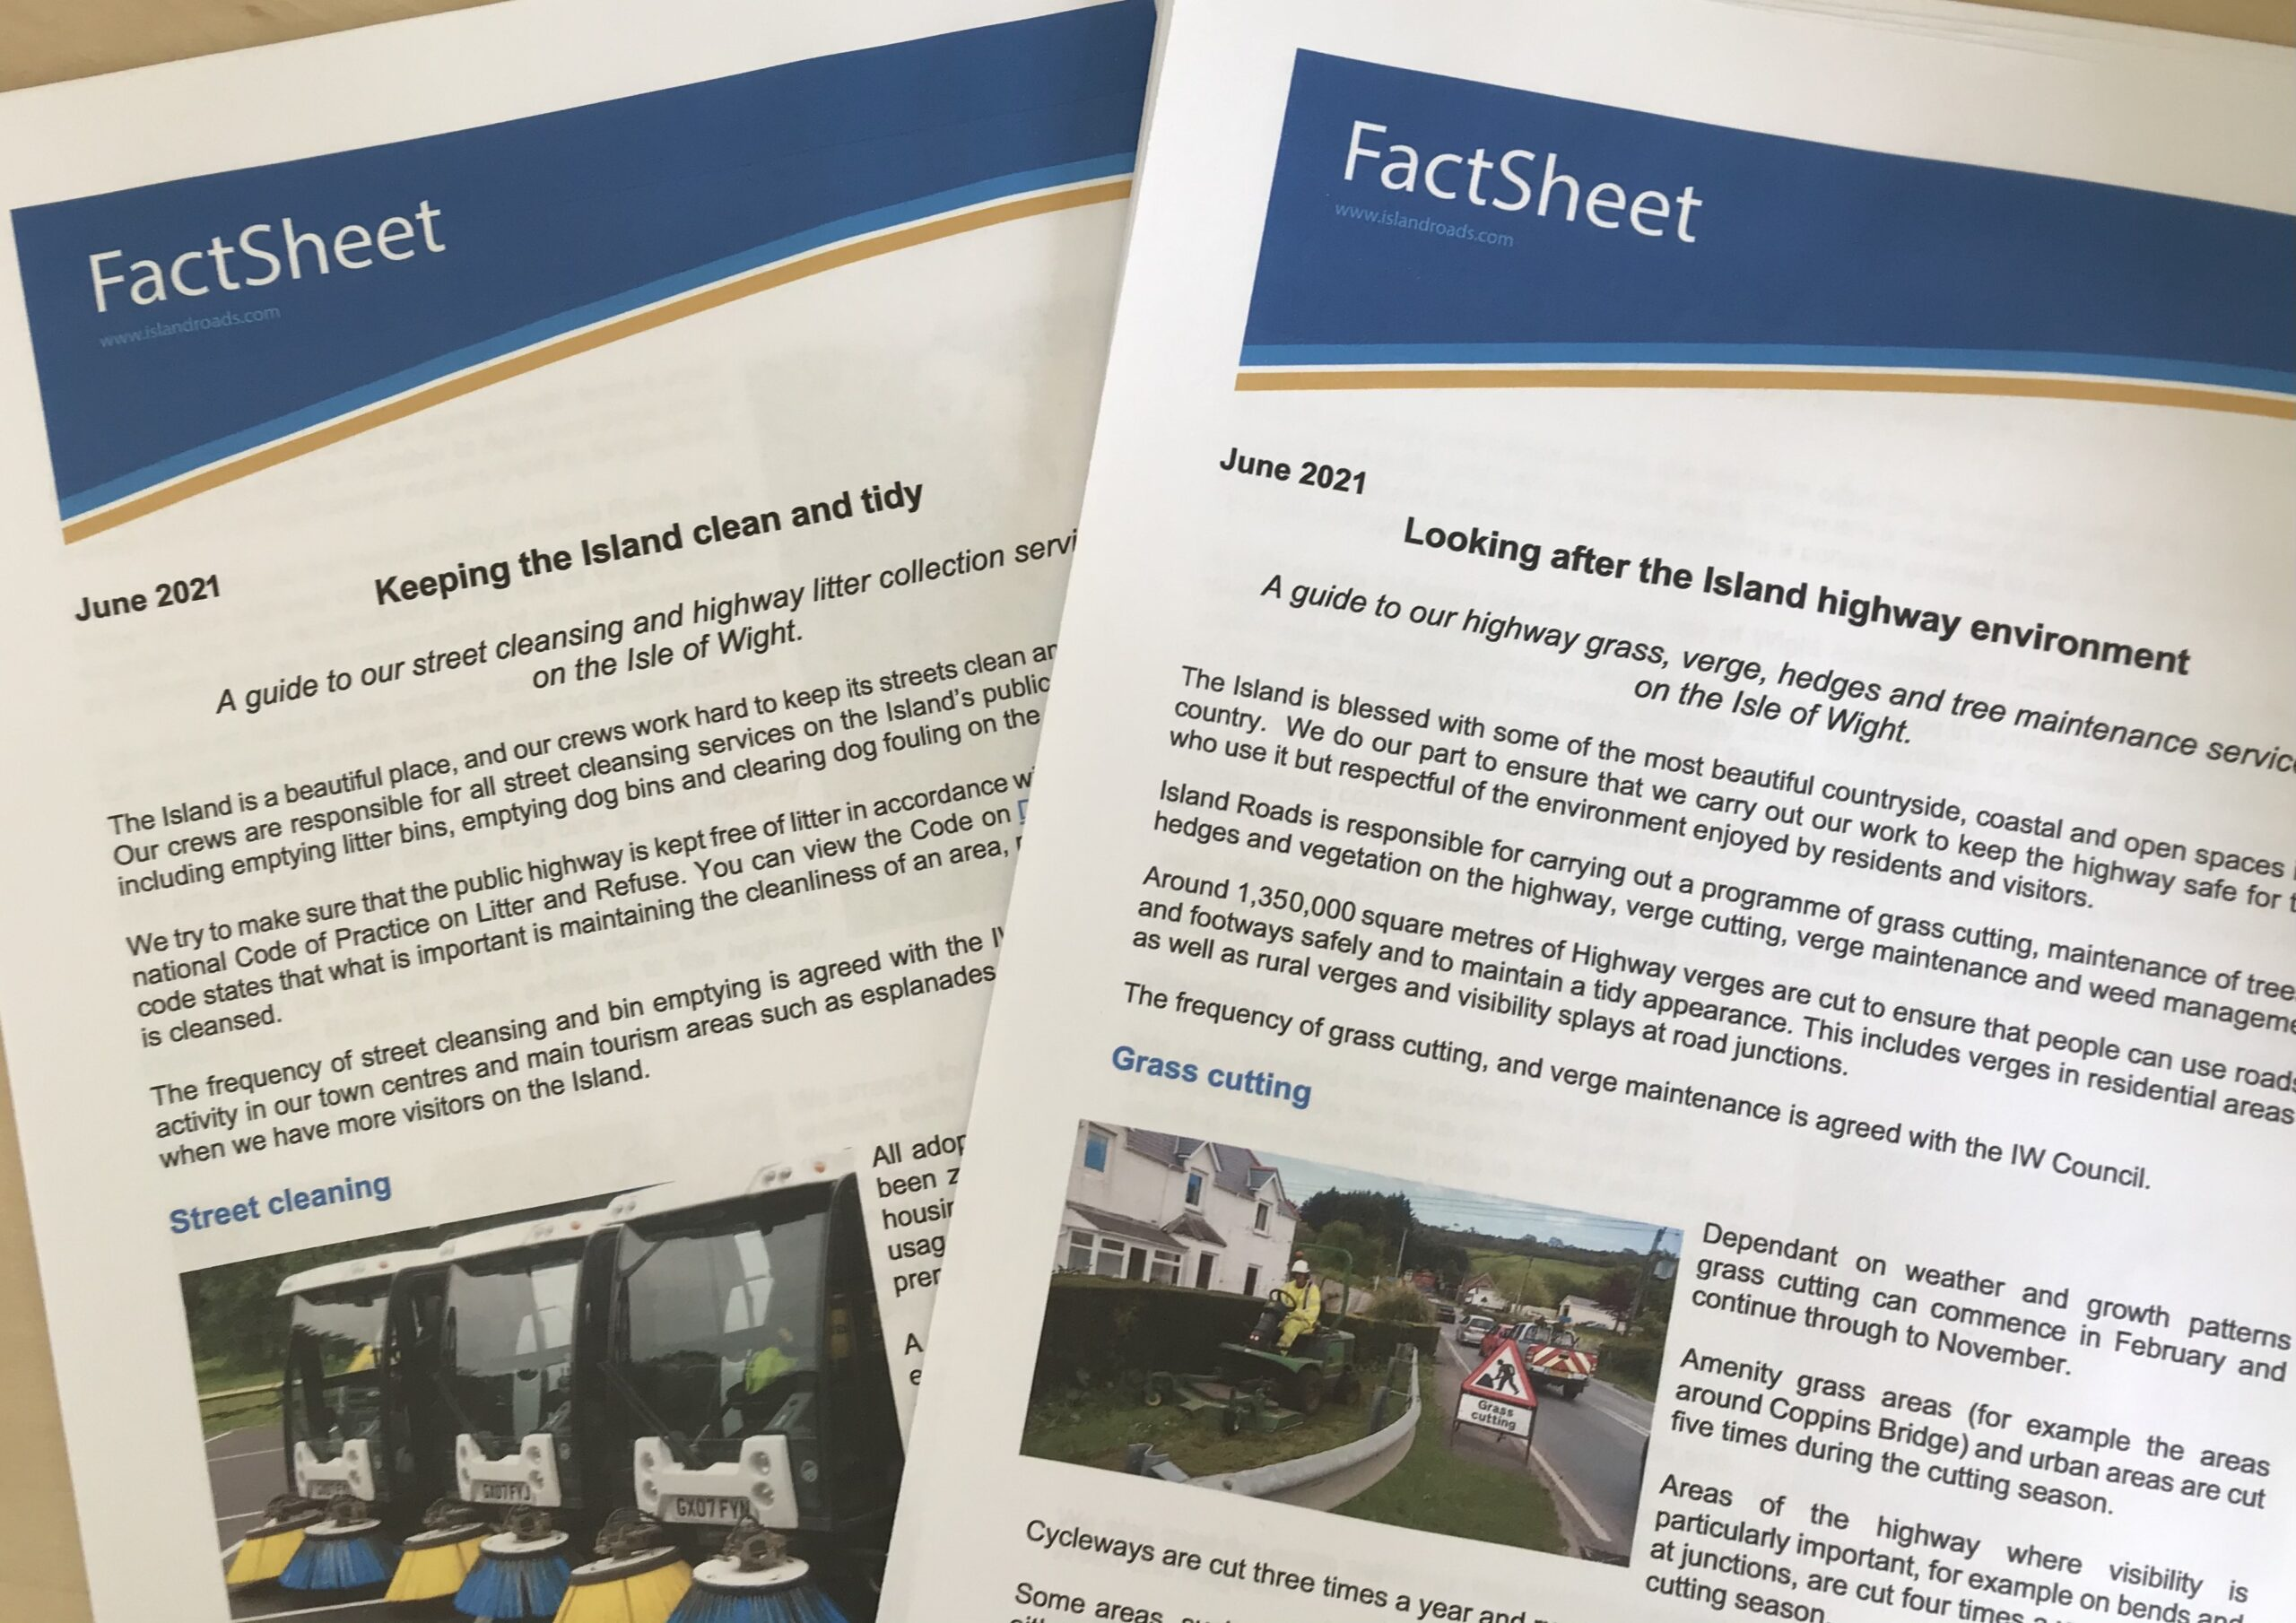 Photo showing two printed factsheets on a desk